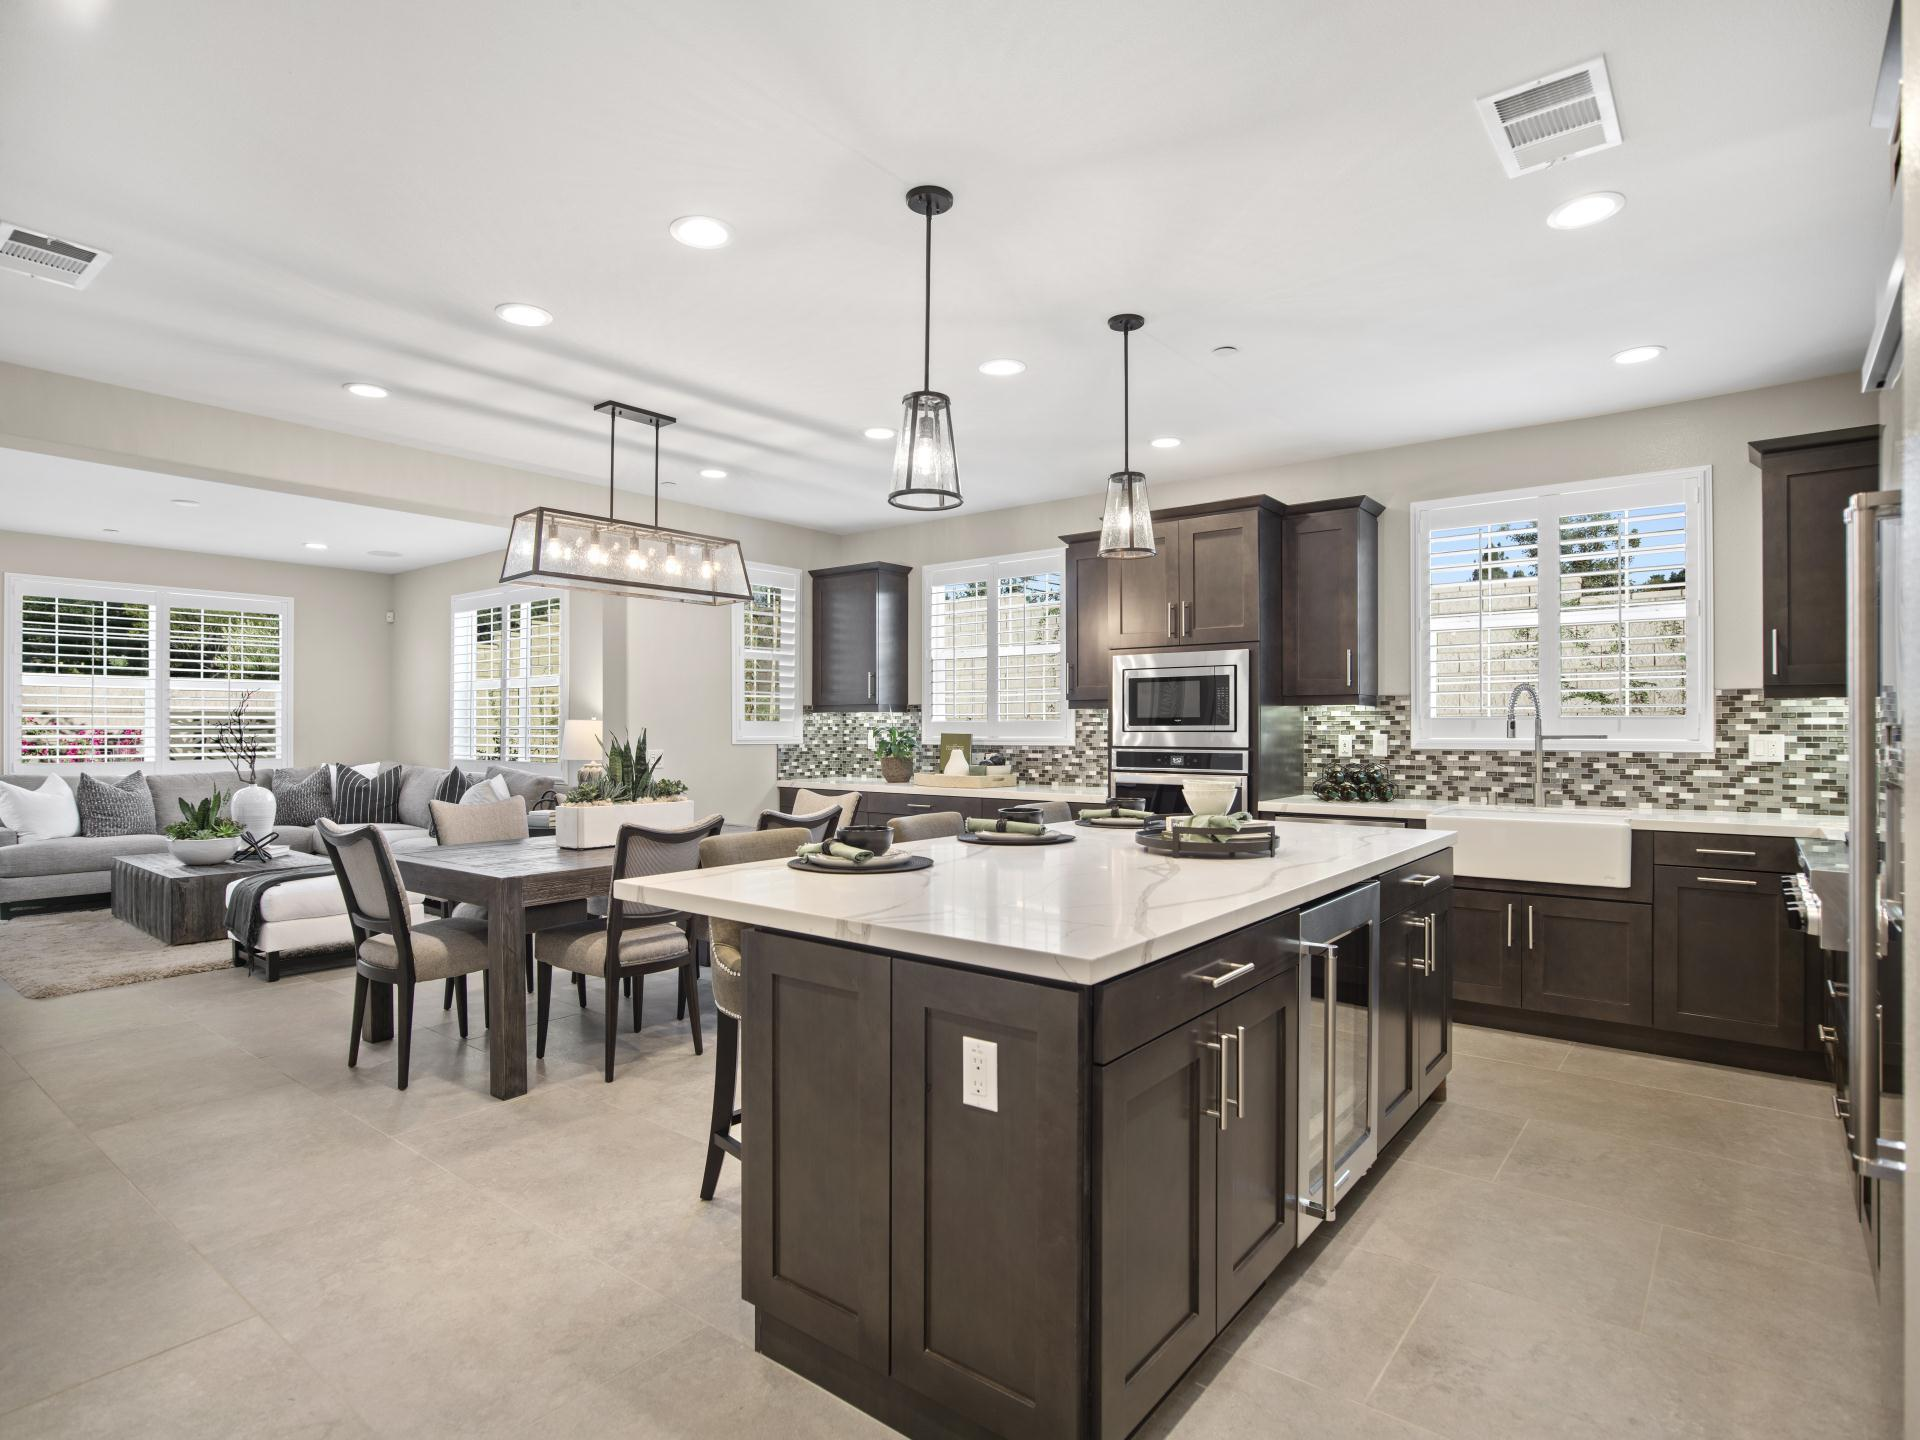 Kitchen featured in the Plan 2 By Brandywine Homes in Los Angeles, CA